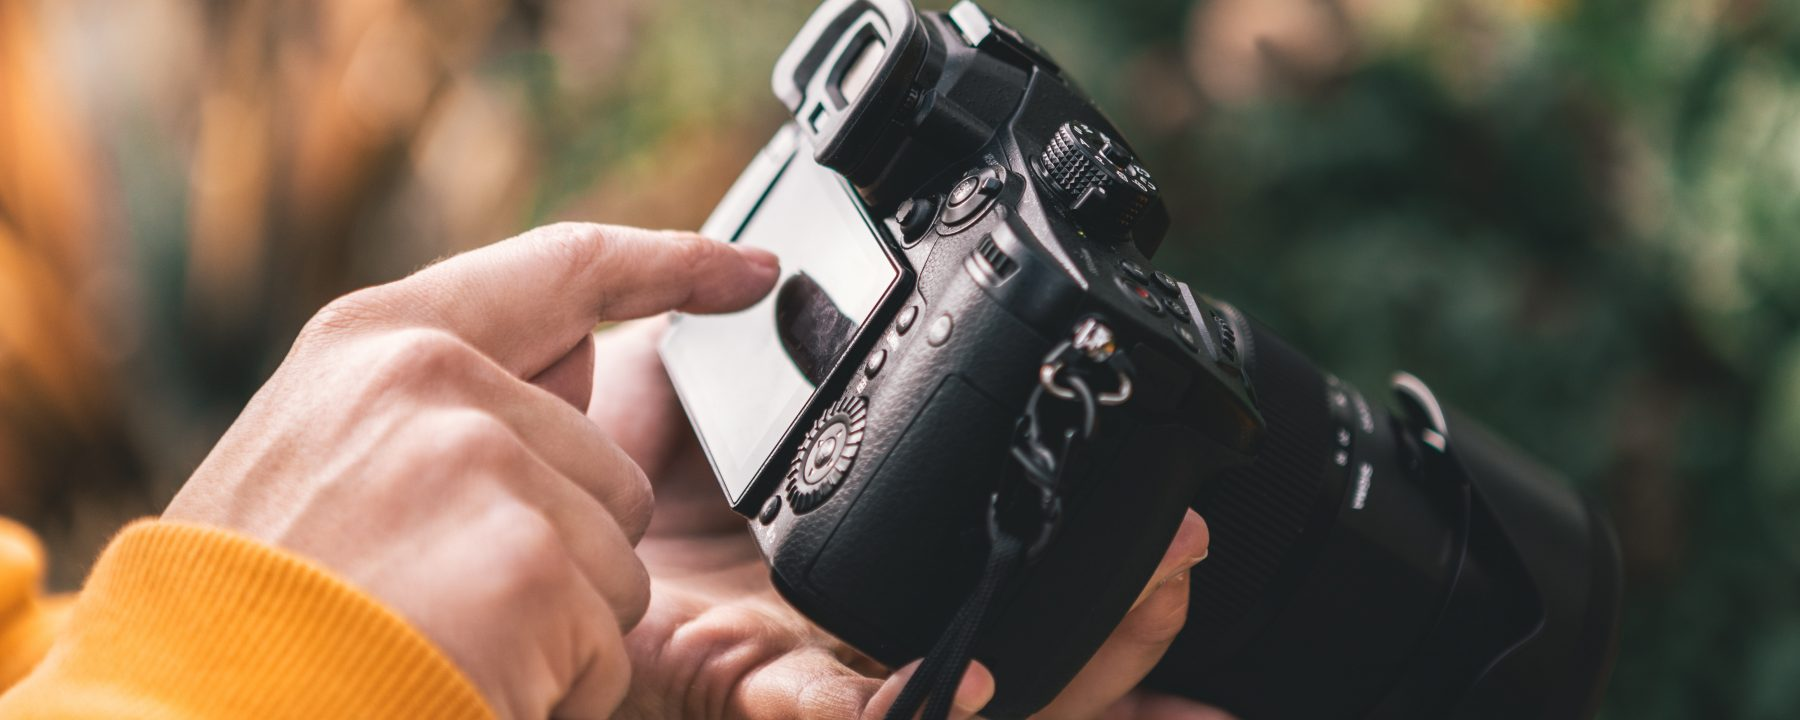 intern wild interest and skills in photography